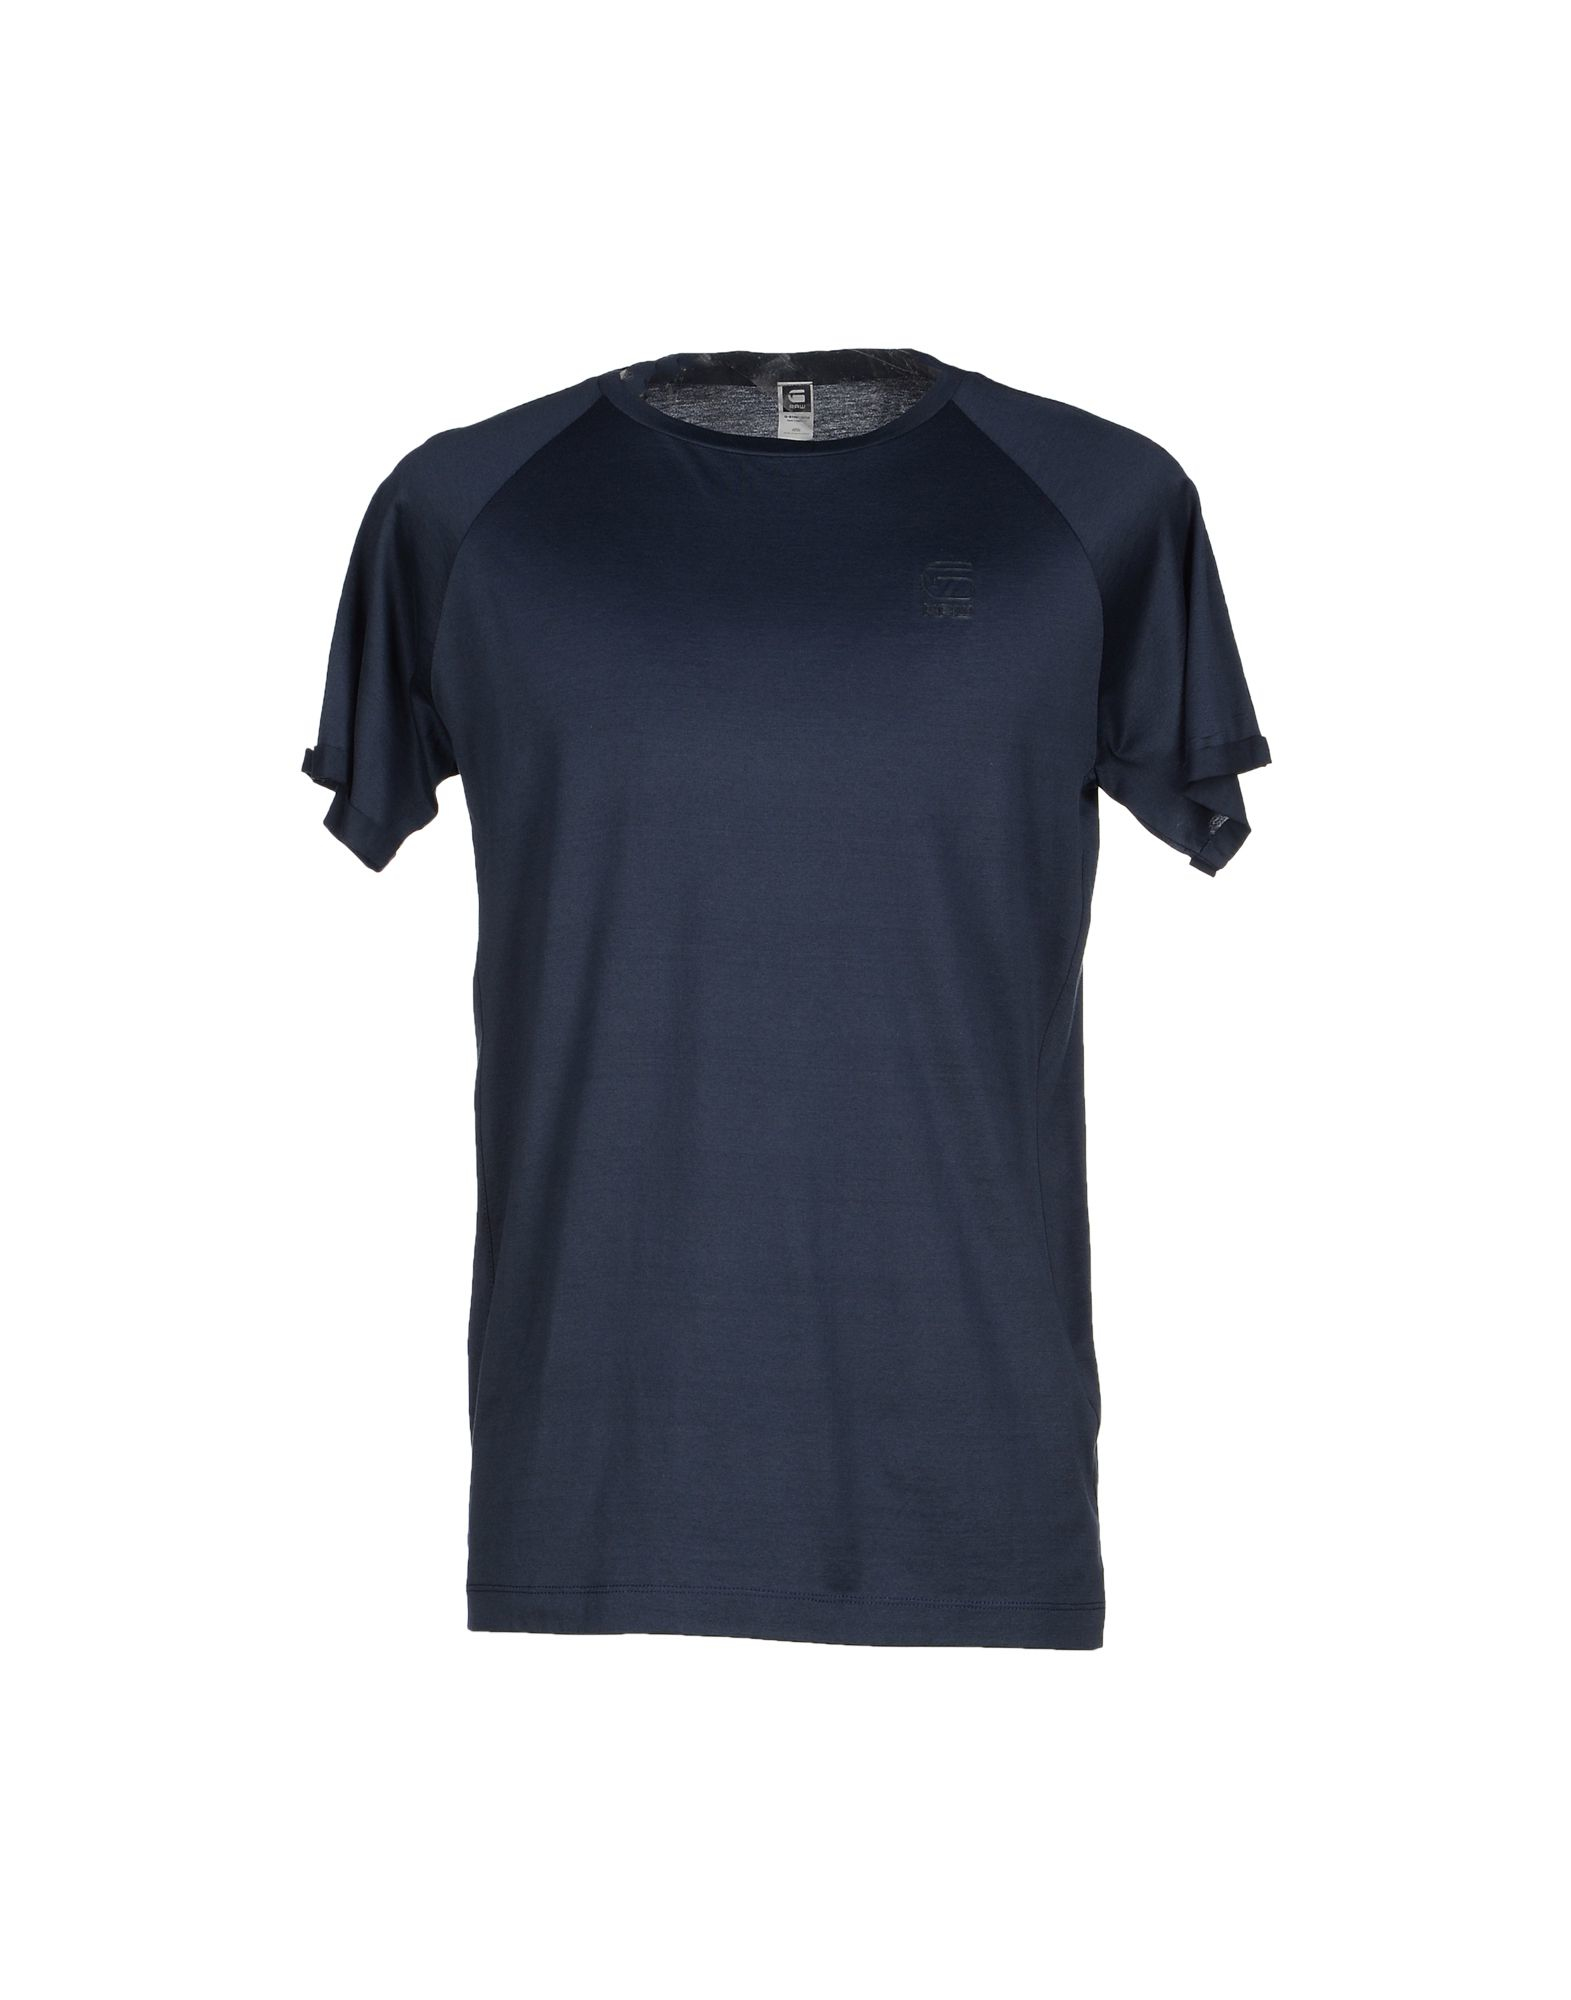 g star raw t shirt in blue for men dark blue lyst. Black Bedroom Furniture Sets. Home Design Ideas